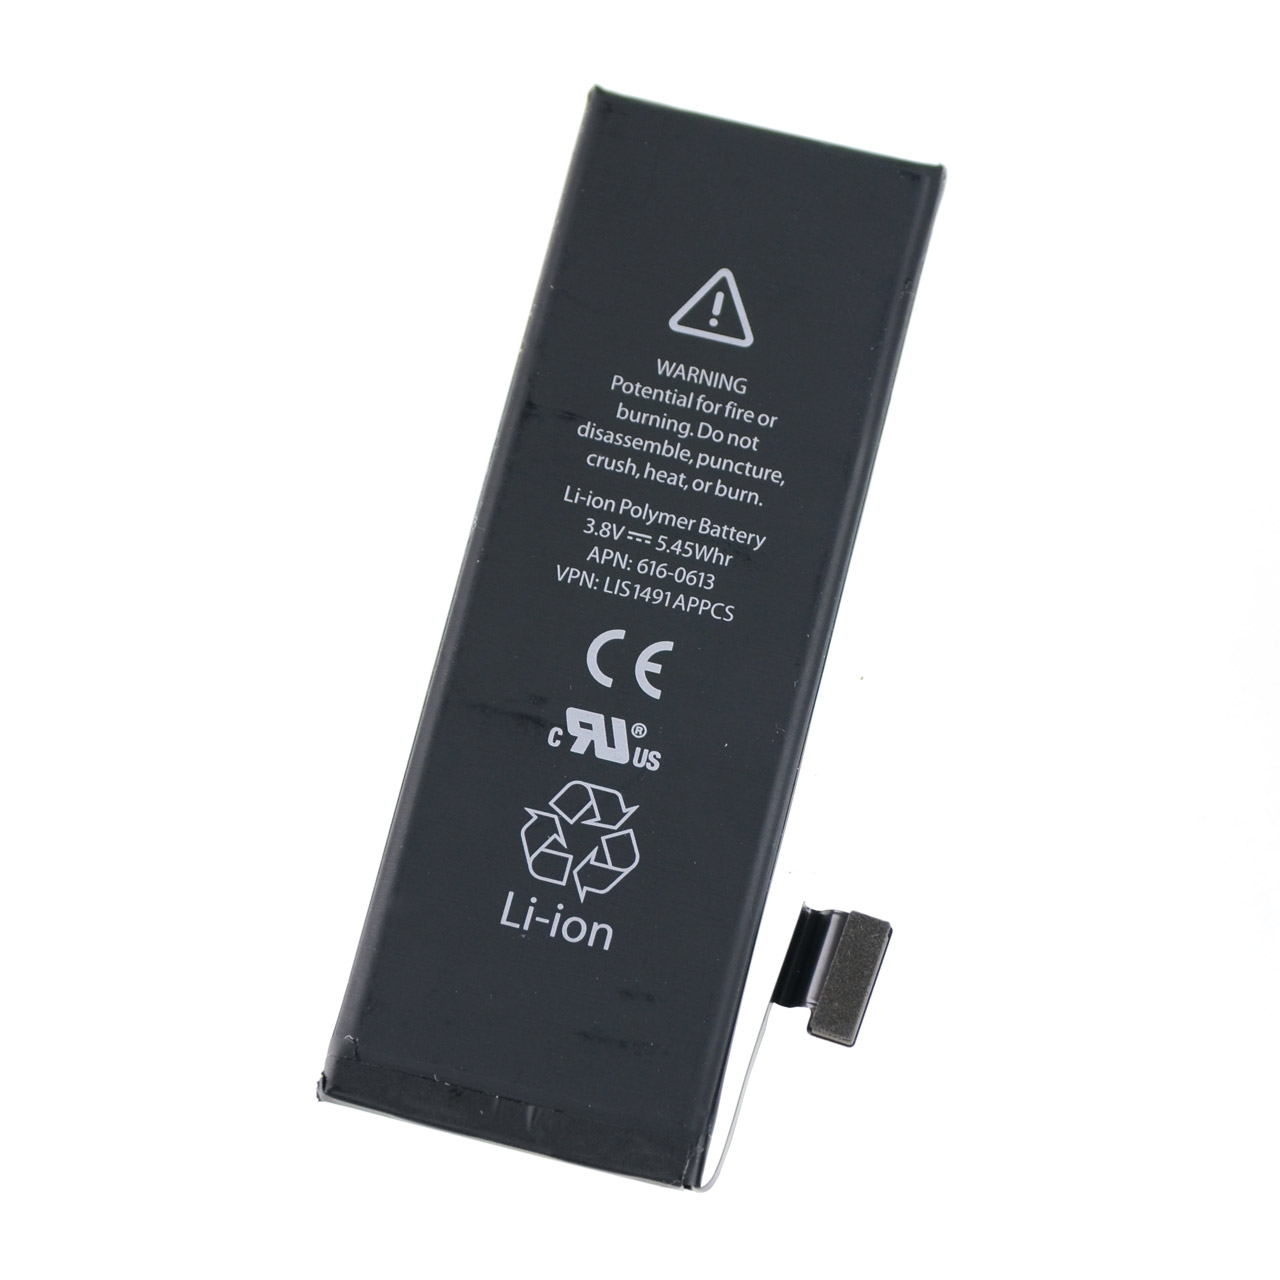 apple iphone 5 battery replacement iphone 5 battery ifixit mobiles caboolture 16576